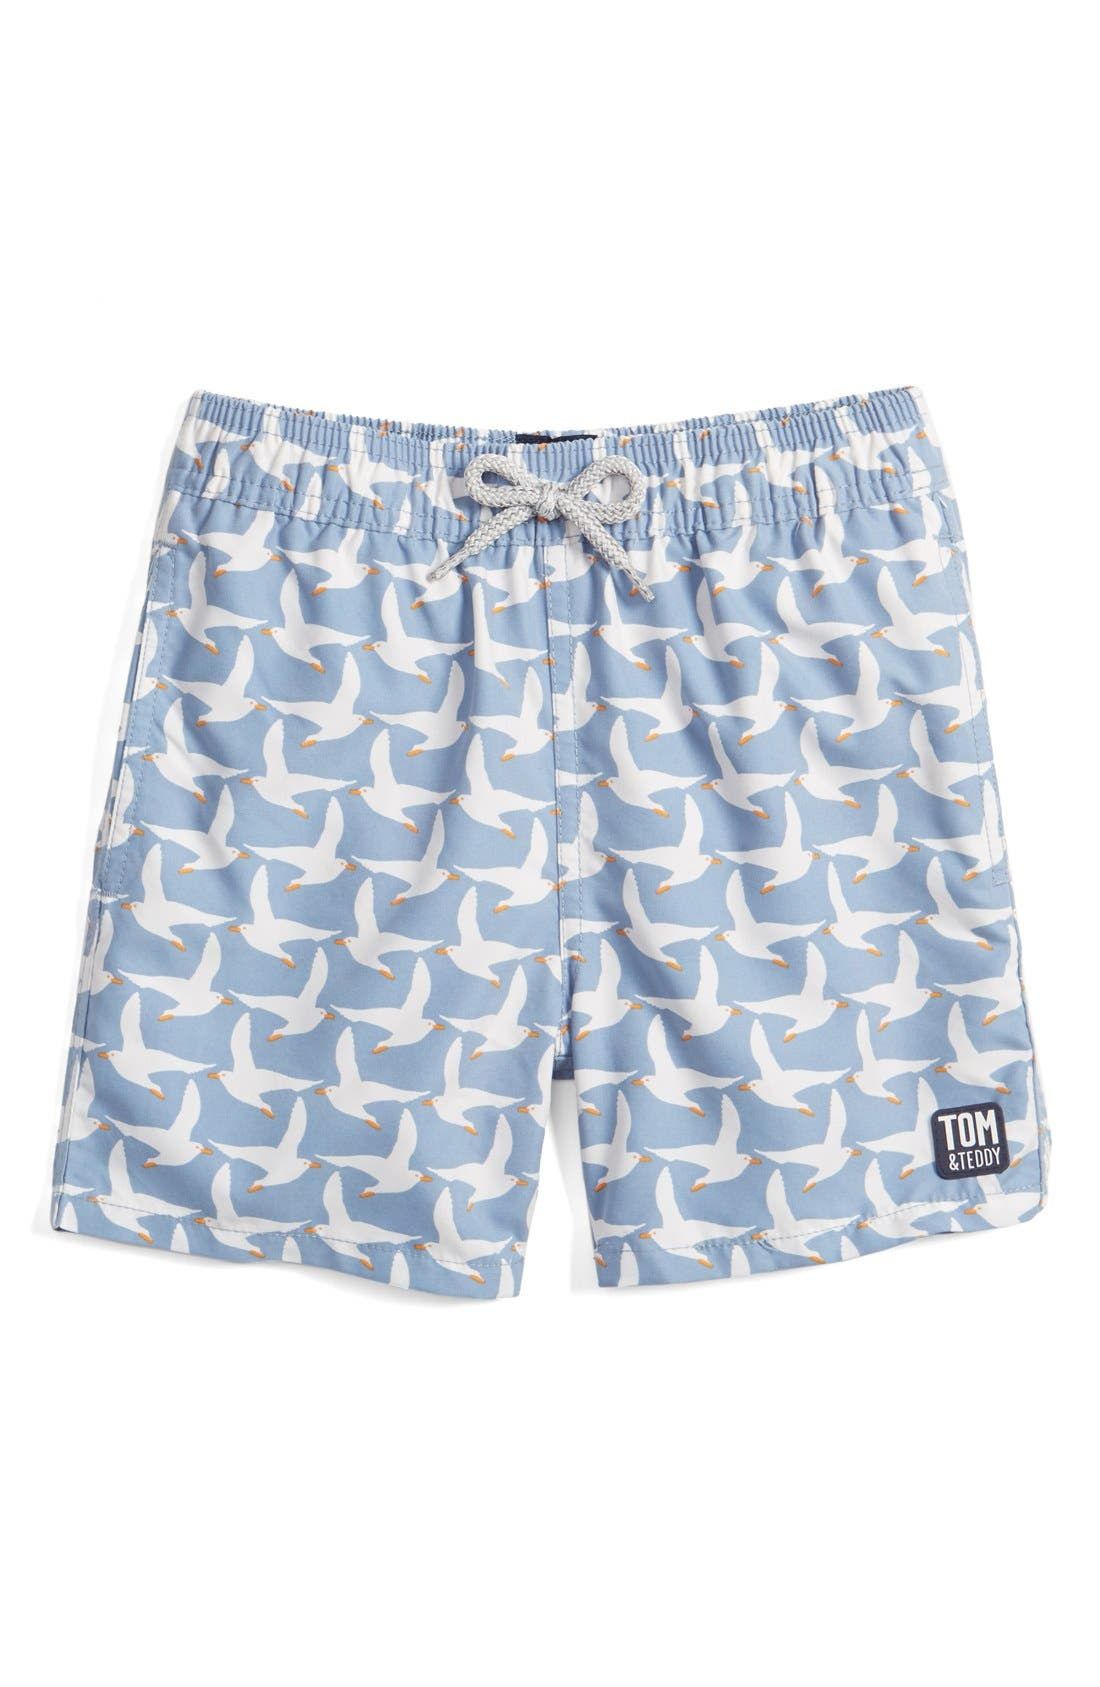 TOM & TEDDY 'Pattern Seagulls' Swim Trunks